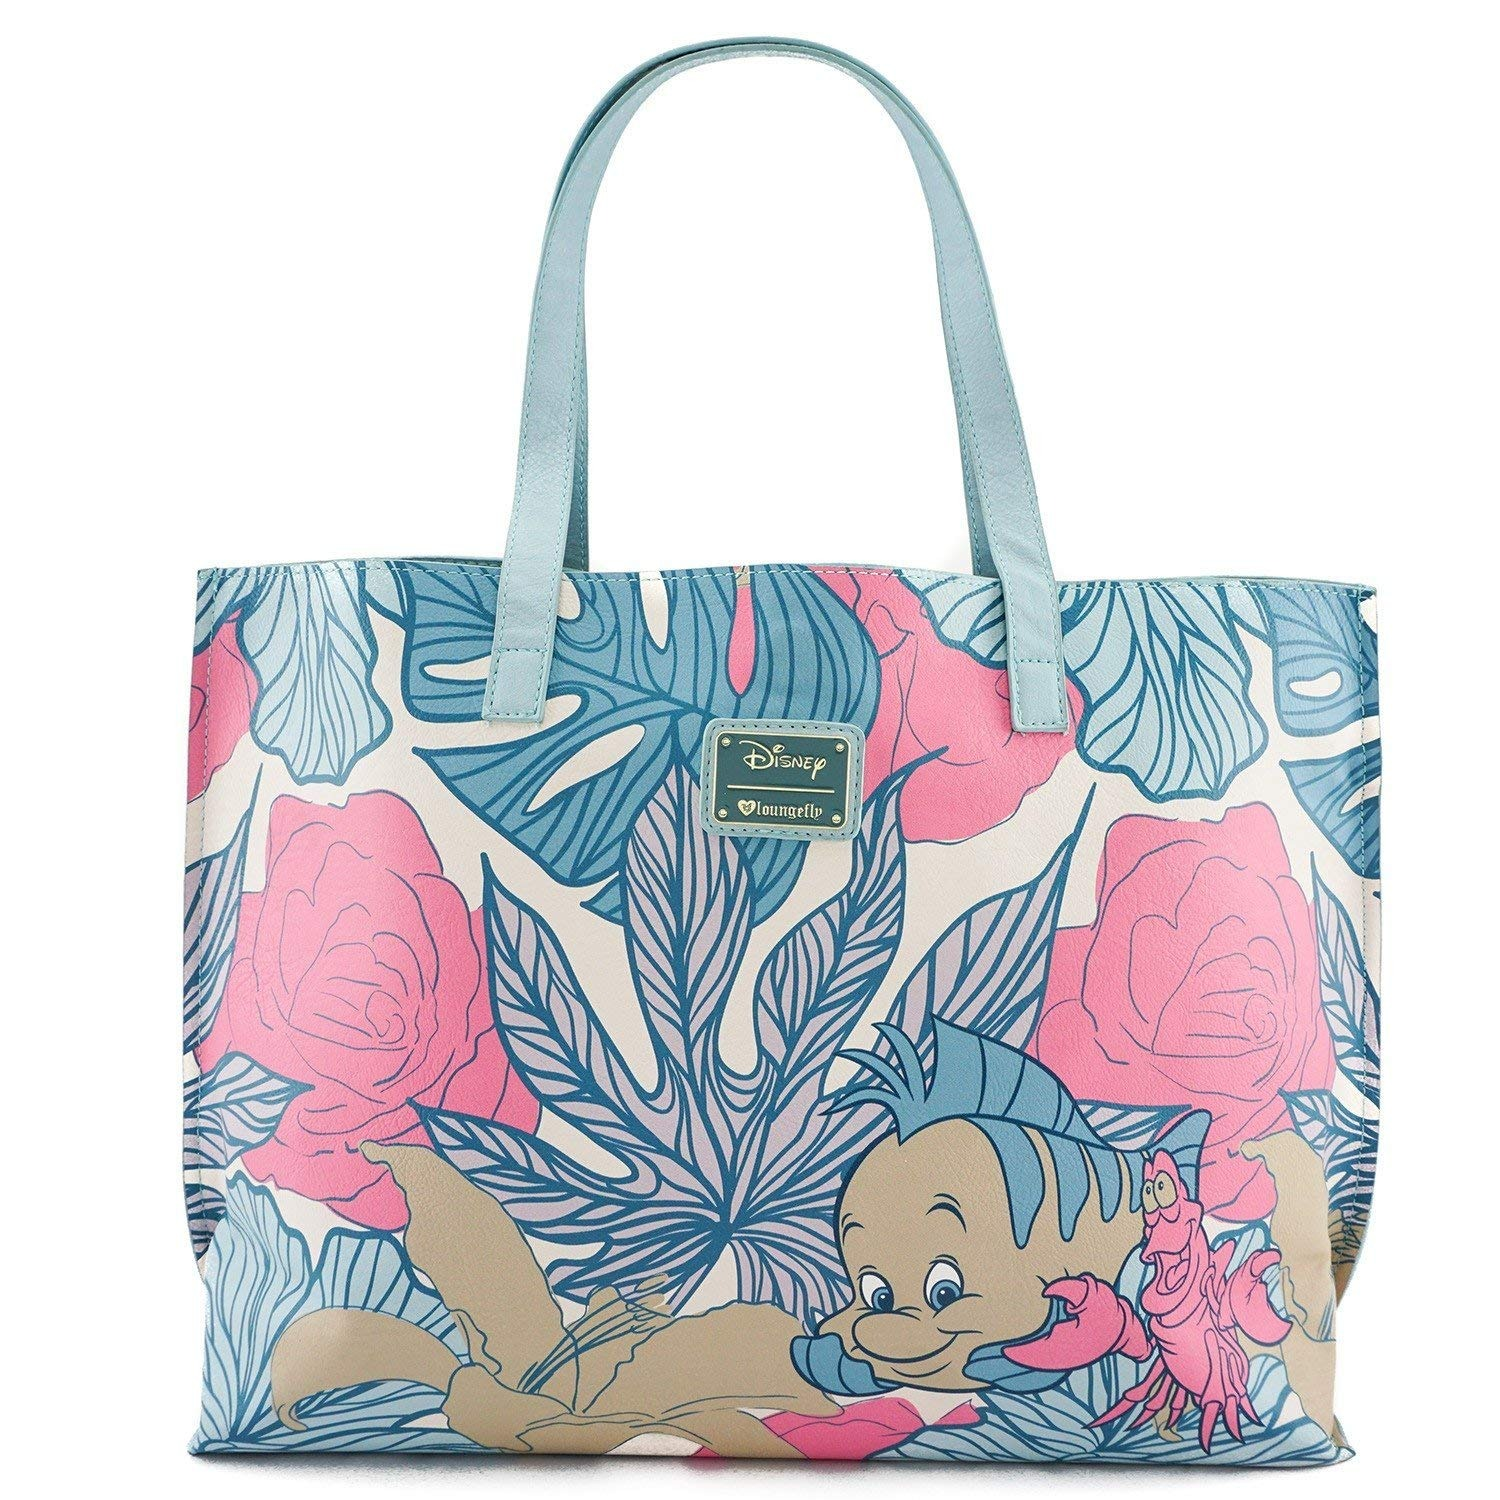 Loungefly x Disney The Little Mermaid Ariel Leaves Tote Purse ... 11774ad9c6547